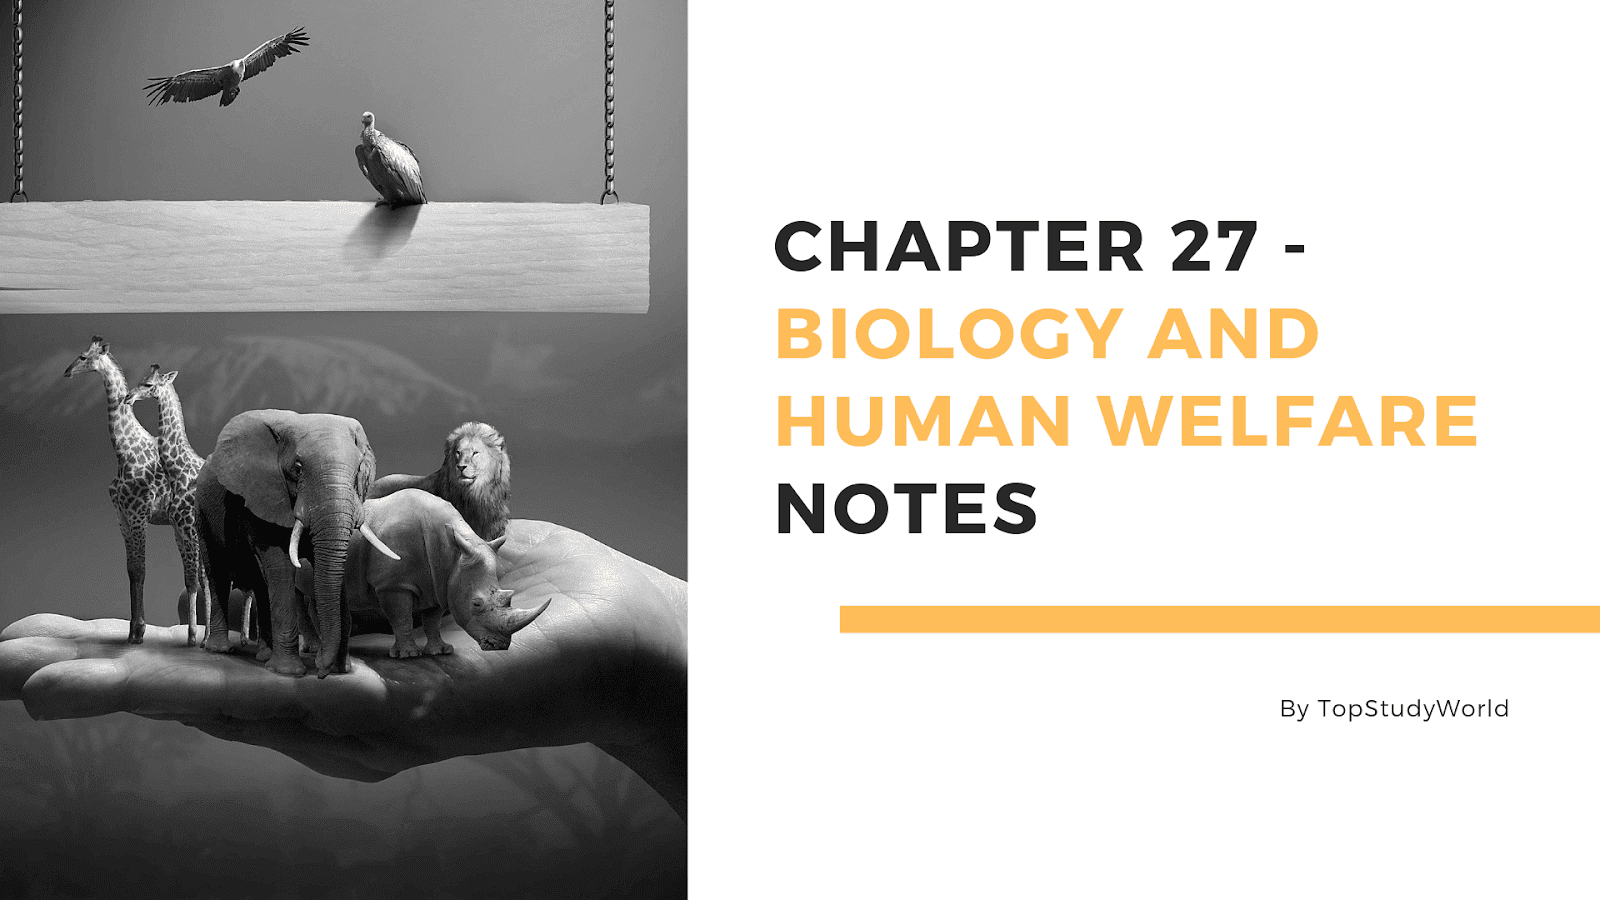 Chapter 27 - Biology and Human Welfare Notes in PDF [12th